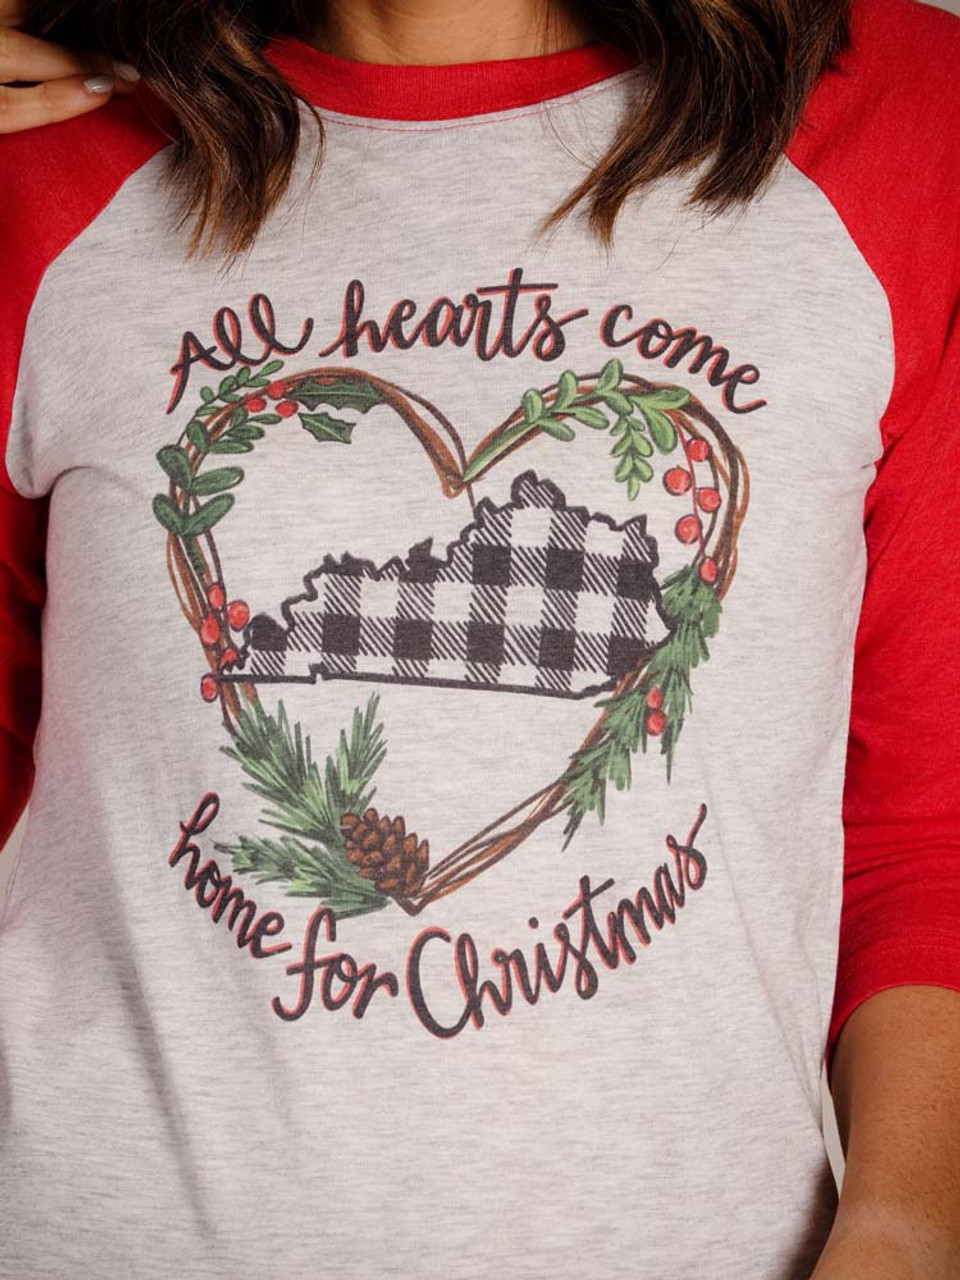 all hearts come home for Christmas graphic tshirt